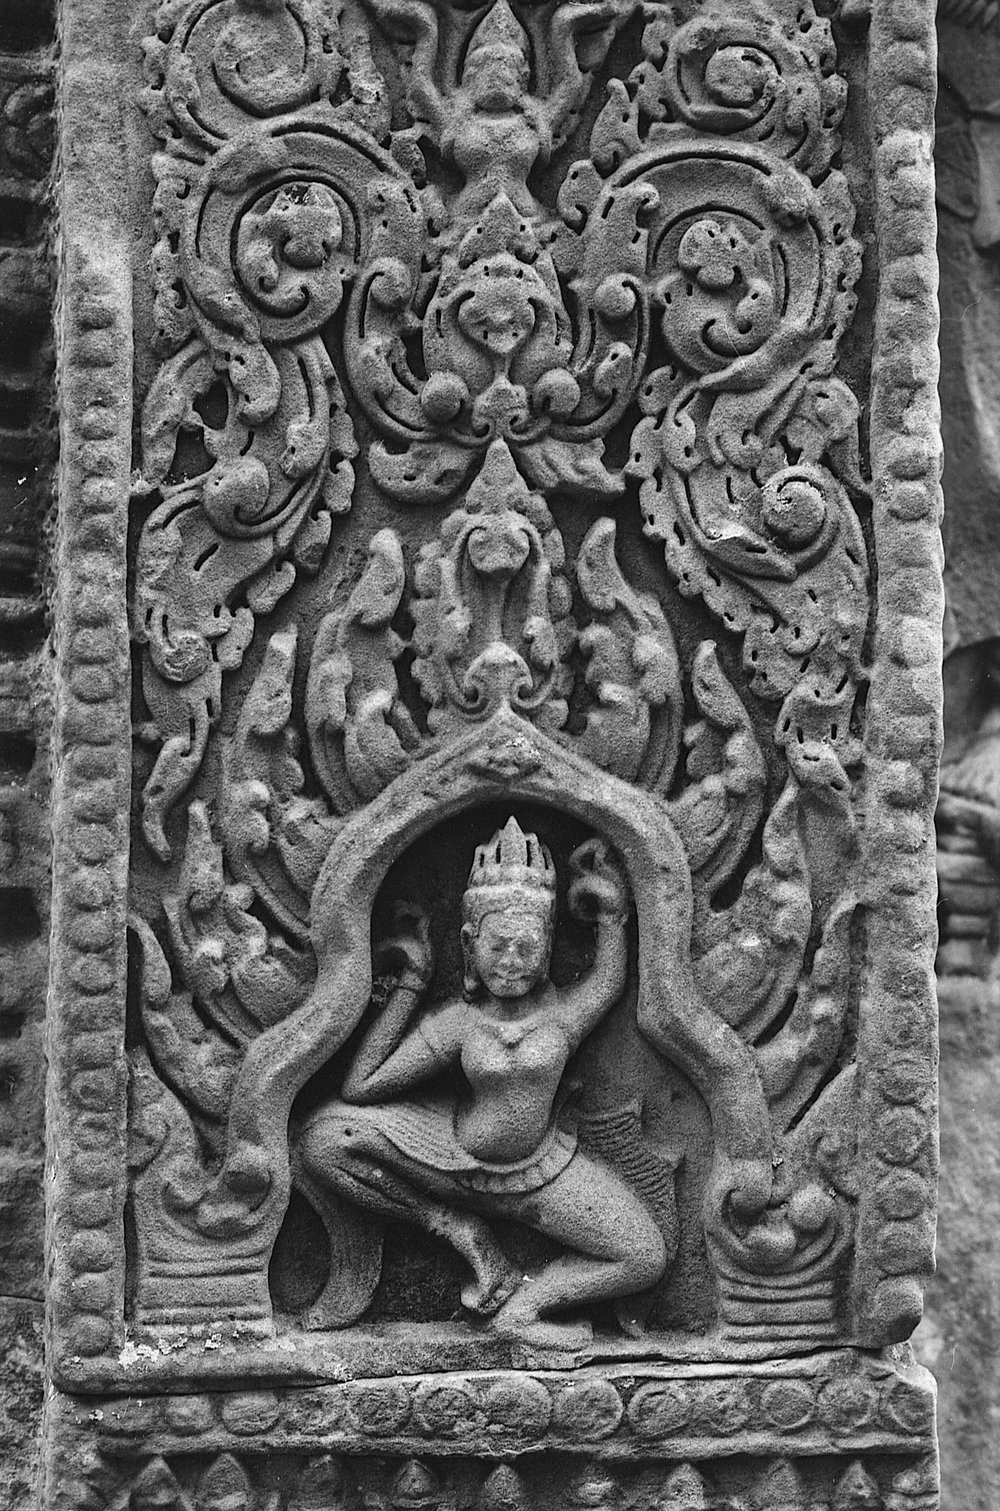 Shot on Fuji Acros 100 pushed two stops. Taken in Angkor Wat, Cambodia.